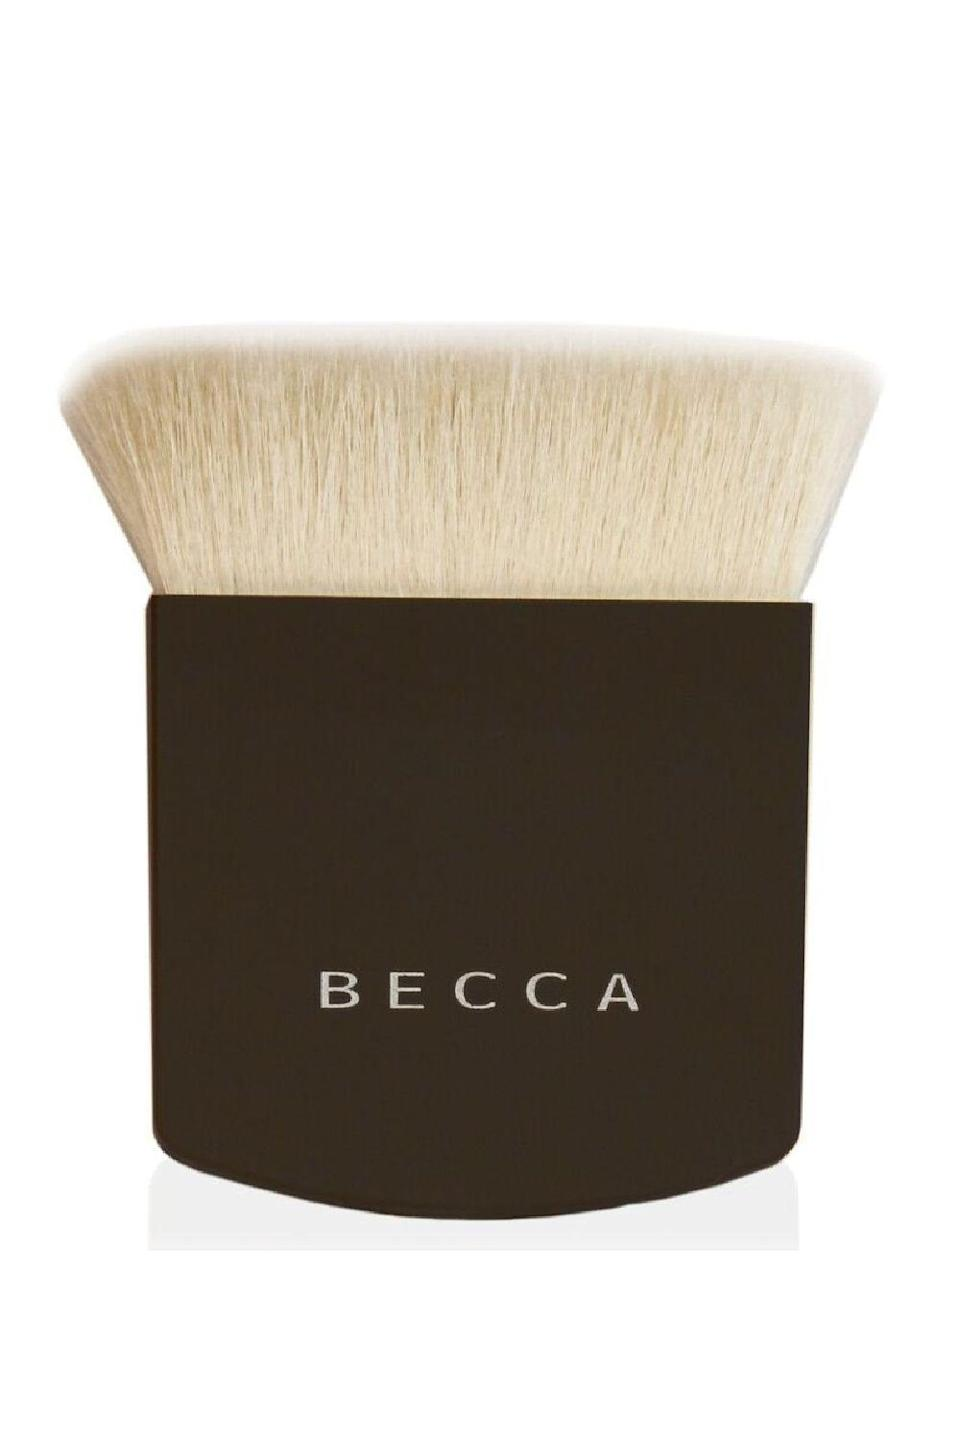 """<p><strong>BECCA</strong></p><p>amazon.com</p><p><strong>$29.05</strong></p><p><a href=""""https://www.amazon.com/dp/B00F4YBNUS?tag=syn-yahoo-20&ascsubtag=%5Bartid%7C10049.g.34552138%5Bsrc%7Cyahoo-us"""" rel=""""nofollow noopener"""" target=""""_blank"""" data-ylk=""""slk:Shop Now"""" class=""""link rapid-noclick-resp"""">Shop Now</a></p><p>I know we just went over flat kabuki brushes, but this one is flat in more than one way. These dense <strong>bristles are sandwiched to create a slim shape that's especially nice for sculpting</strong> the <a href=""""https://www.cosmopolitan.com/style-beauty/beauty/how-to/a43730/face-shape-contour-map/"""" rel=""""nofollow noopener"""" target=""""_blank"""" data-ylk=""""slk:contours of your face"""" class=""""link rapid-noclick-resp"""">contours of your face</a>. Bonus: The edges and corners of this precision brush can also be used to apply <a href=""""https://www.cosmopolitan.com/style-beauty/beauty/g8655202/best-highlighter-makeup-for-face/"""" rel=""""nofollow noopener"""" target=""""_blank"""" data-ylk=""""slk:highlighter"""" class=""""link rapid-noclick-resp"""">highlighter</a>. </p>"""